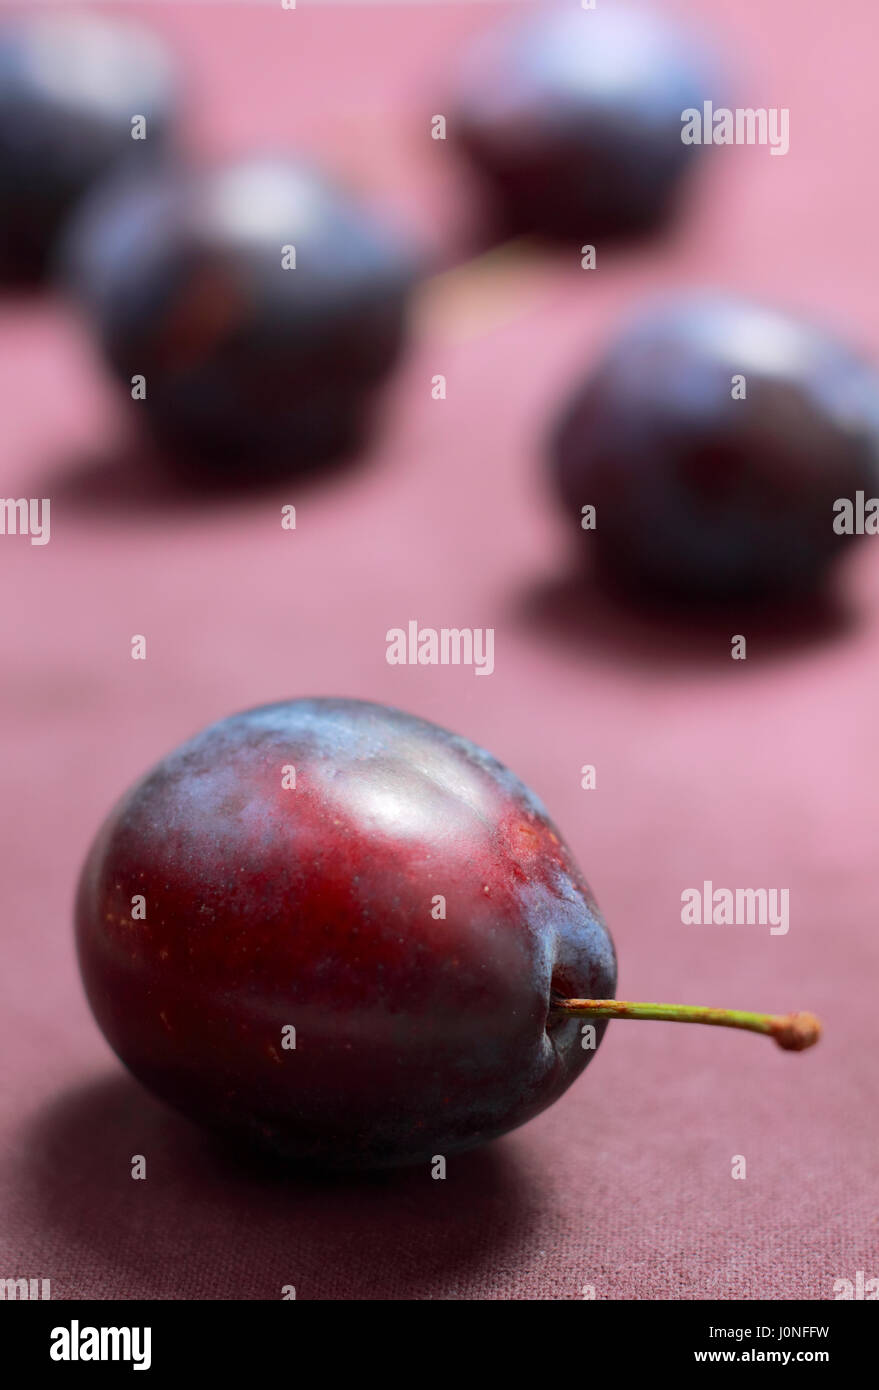 Plum on textile with unfocused plums on background - Stock Image